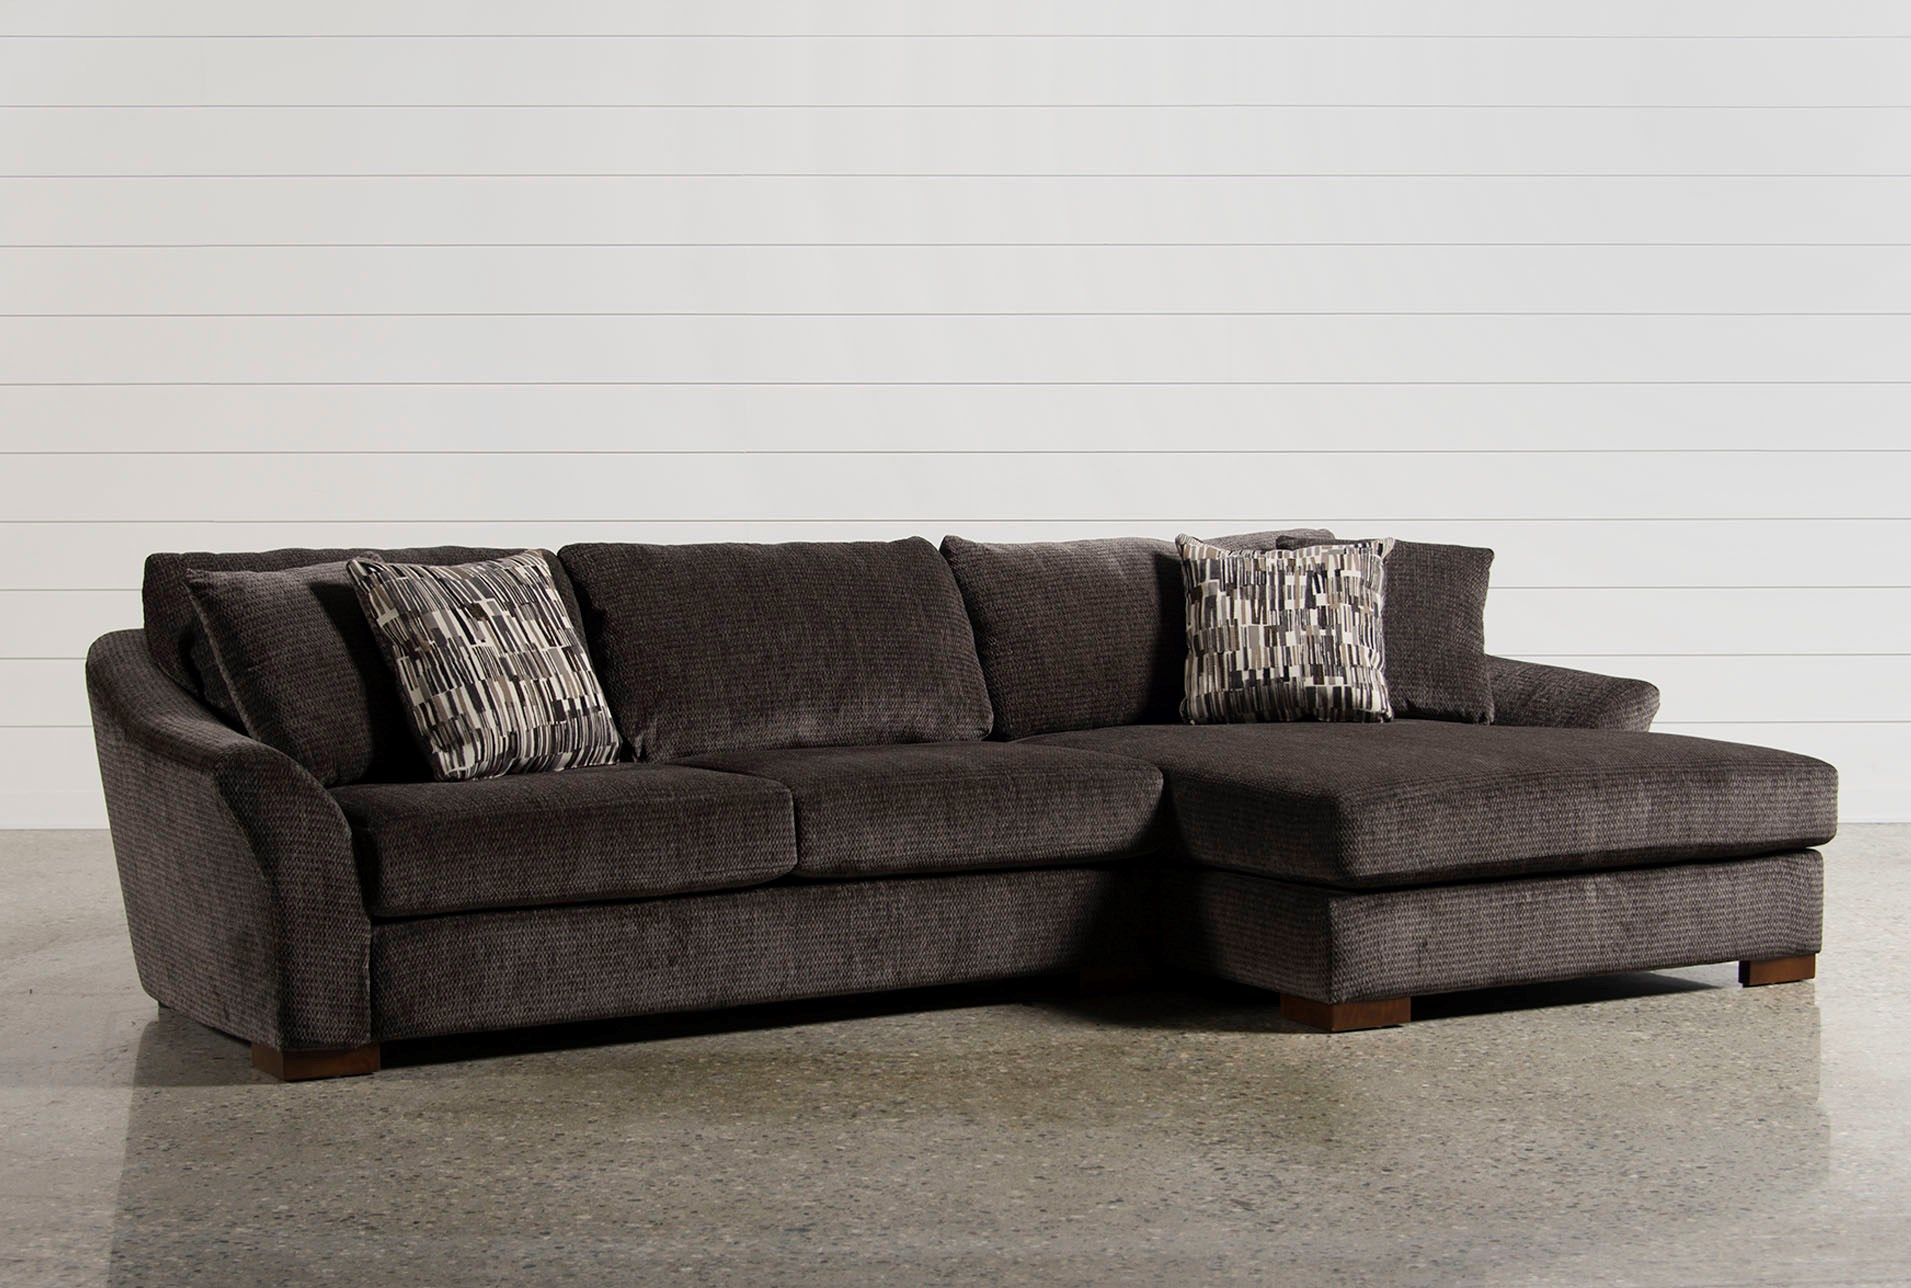 Evan 2 Piece Sectional W Raf Chaise Qty 1 Has Been Successfully Added To Your Cart